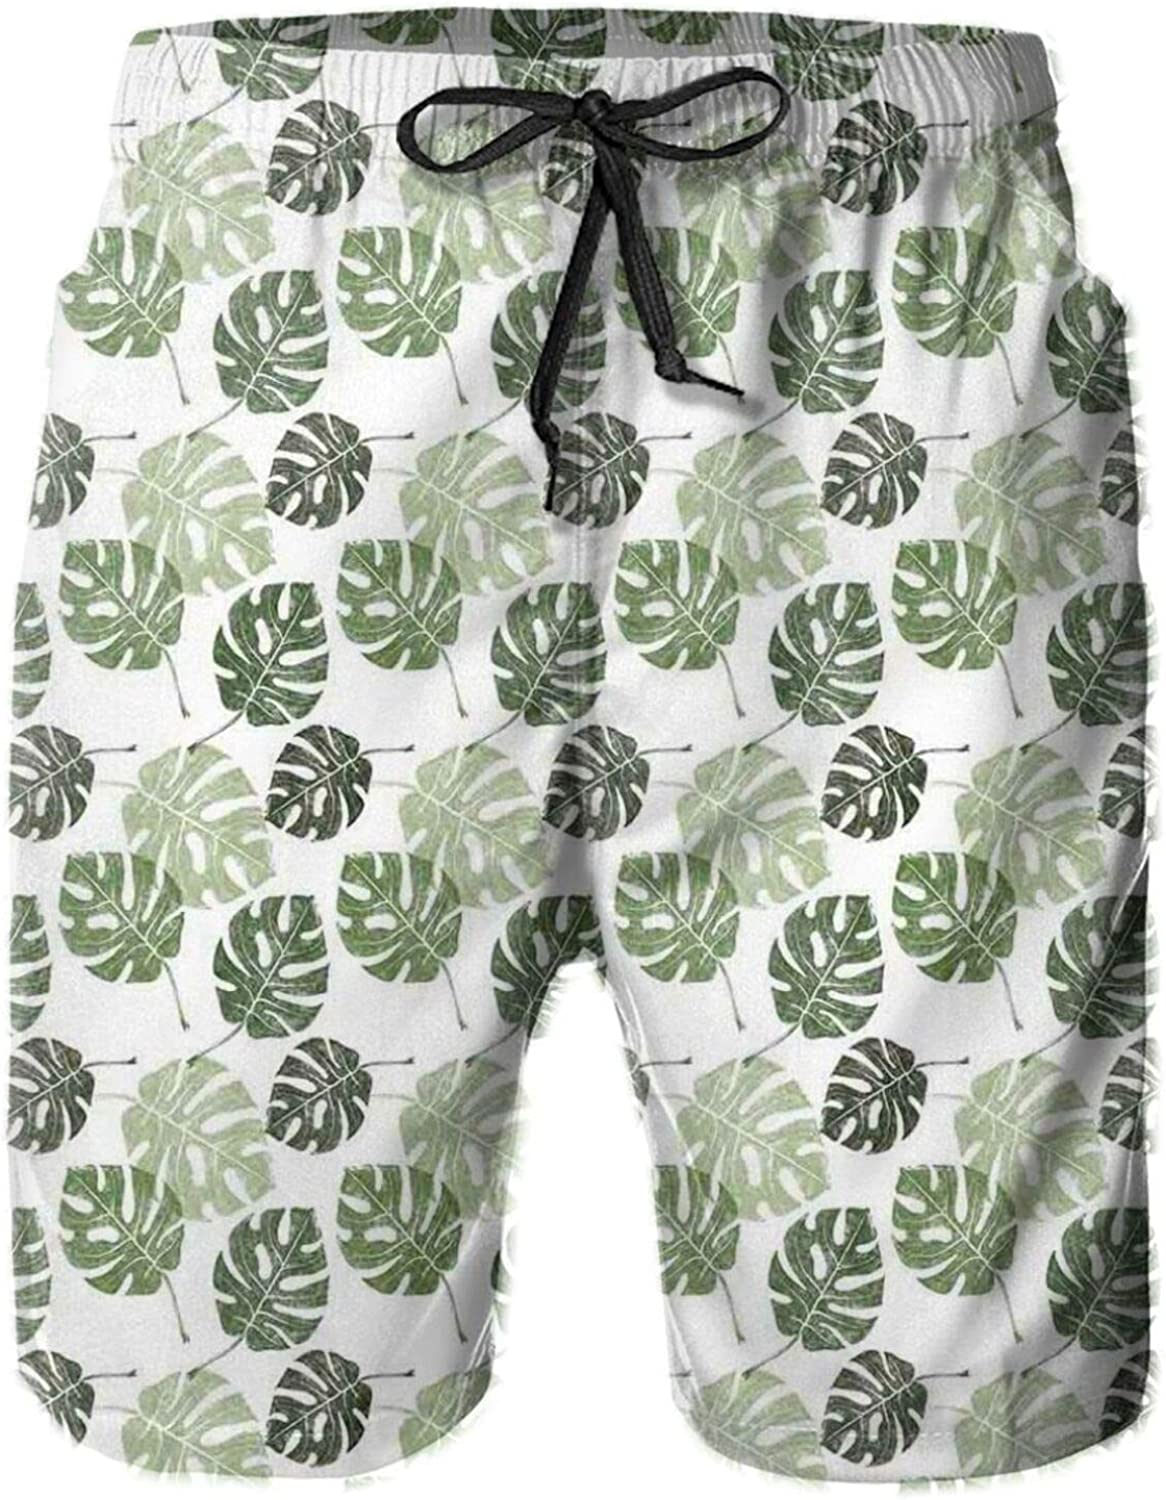 Tropical Jungle Foliage Hawaiian Nature Growth Sketchy Leaves Environment Eco Swimming Trunks for Men Beach Shorts Casual Style,XL